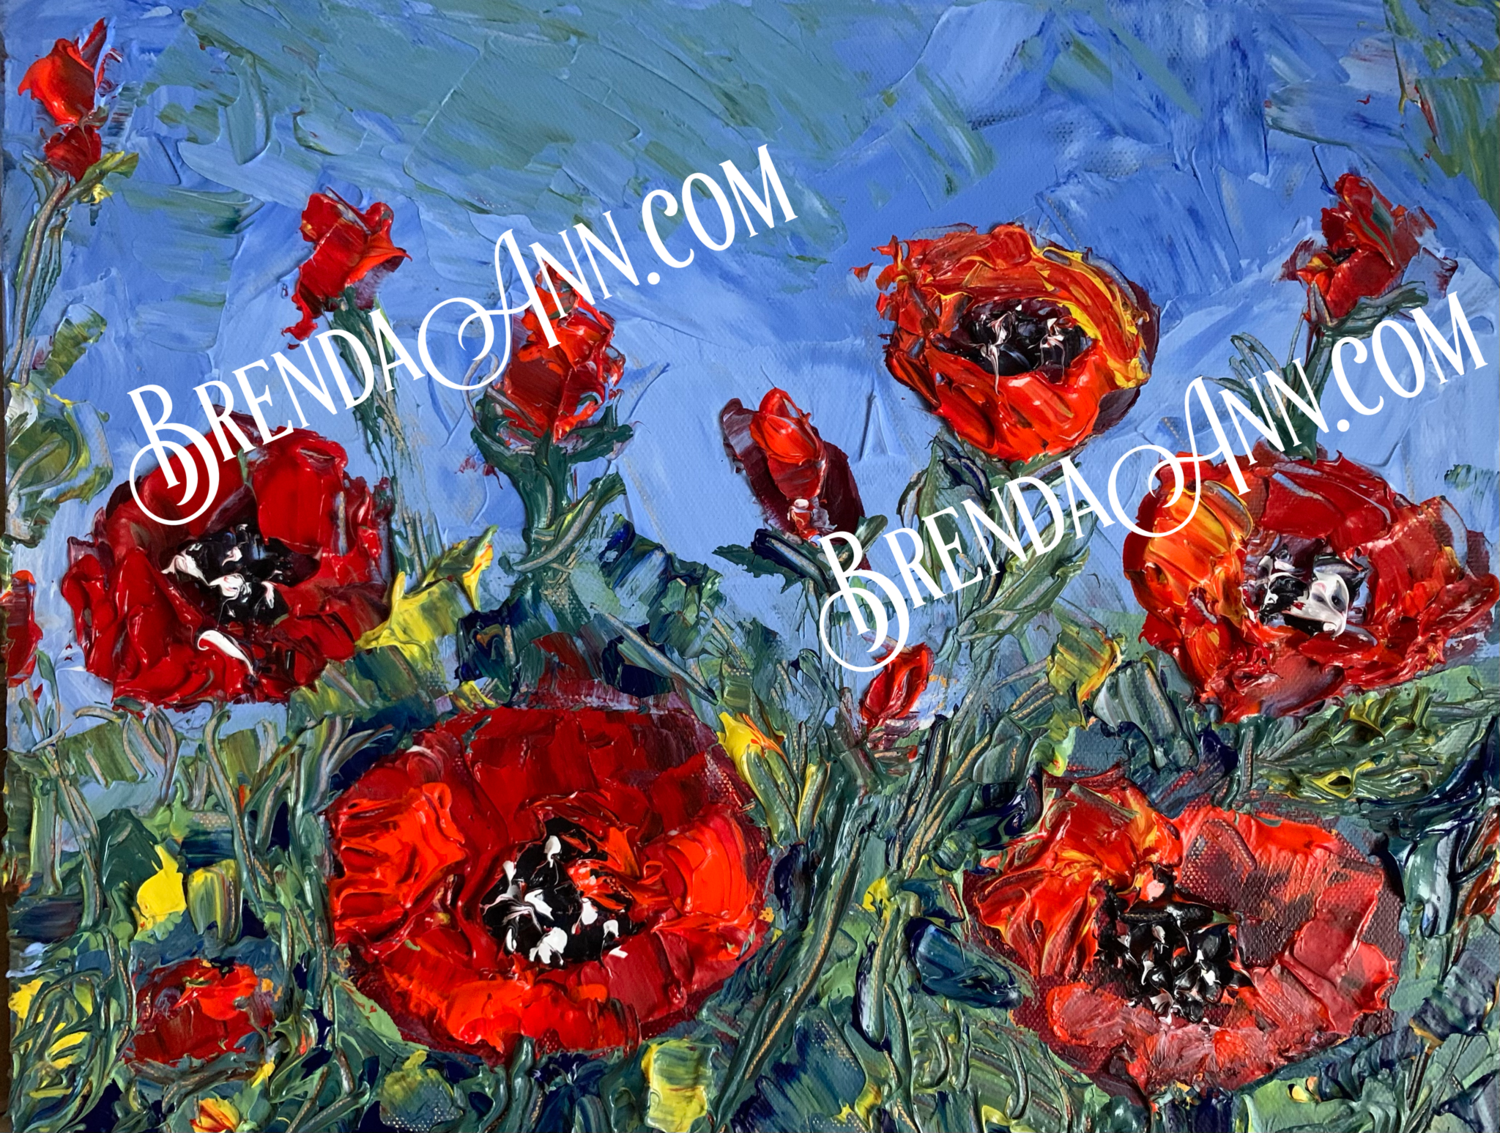 Red Poppies - Original - Thick Impasto Acrylic Painting on Canvas